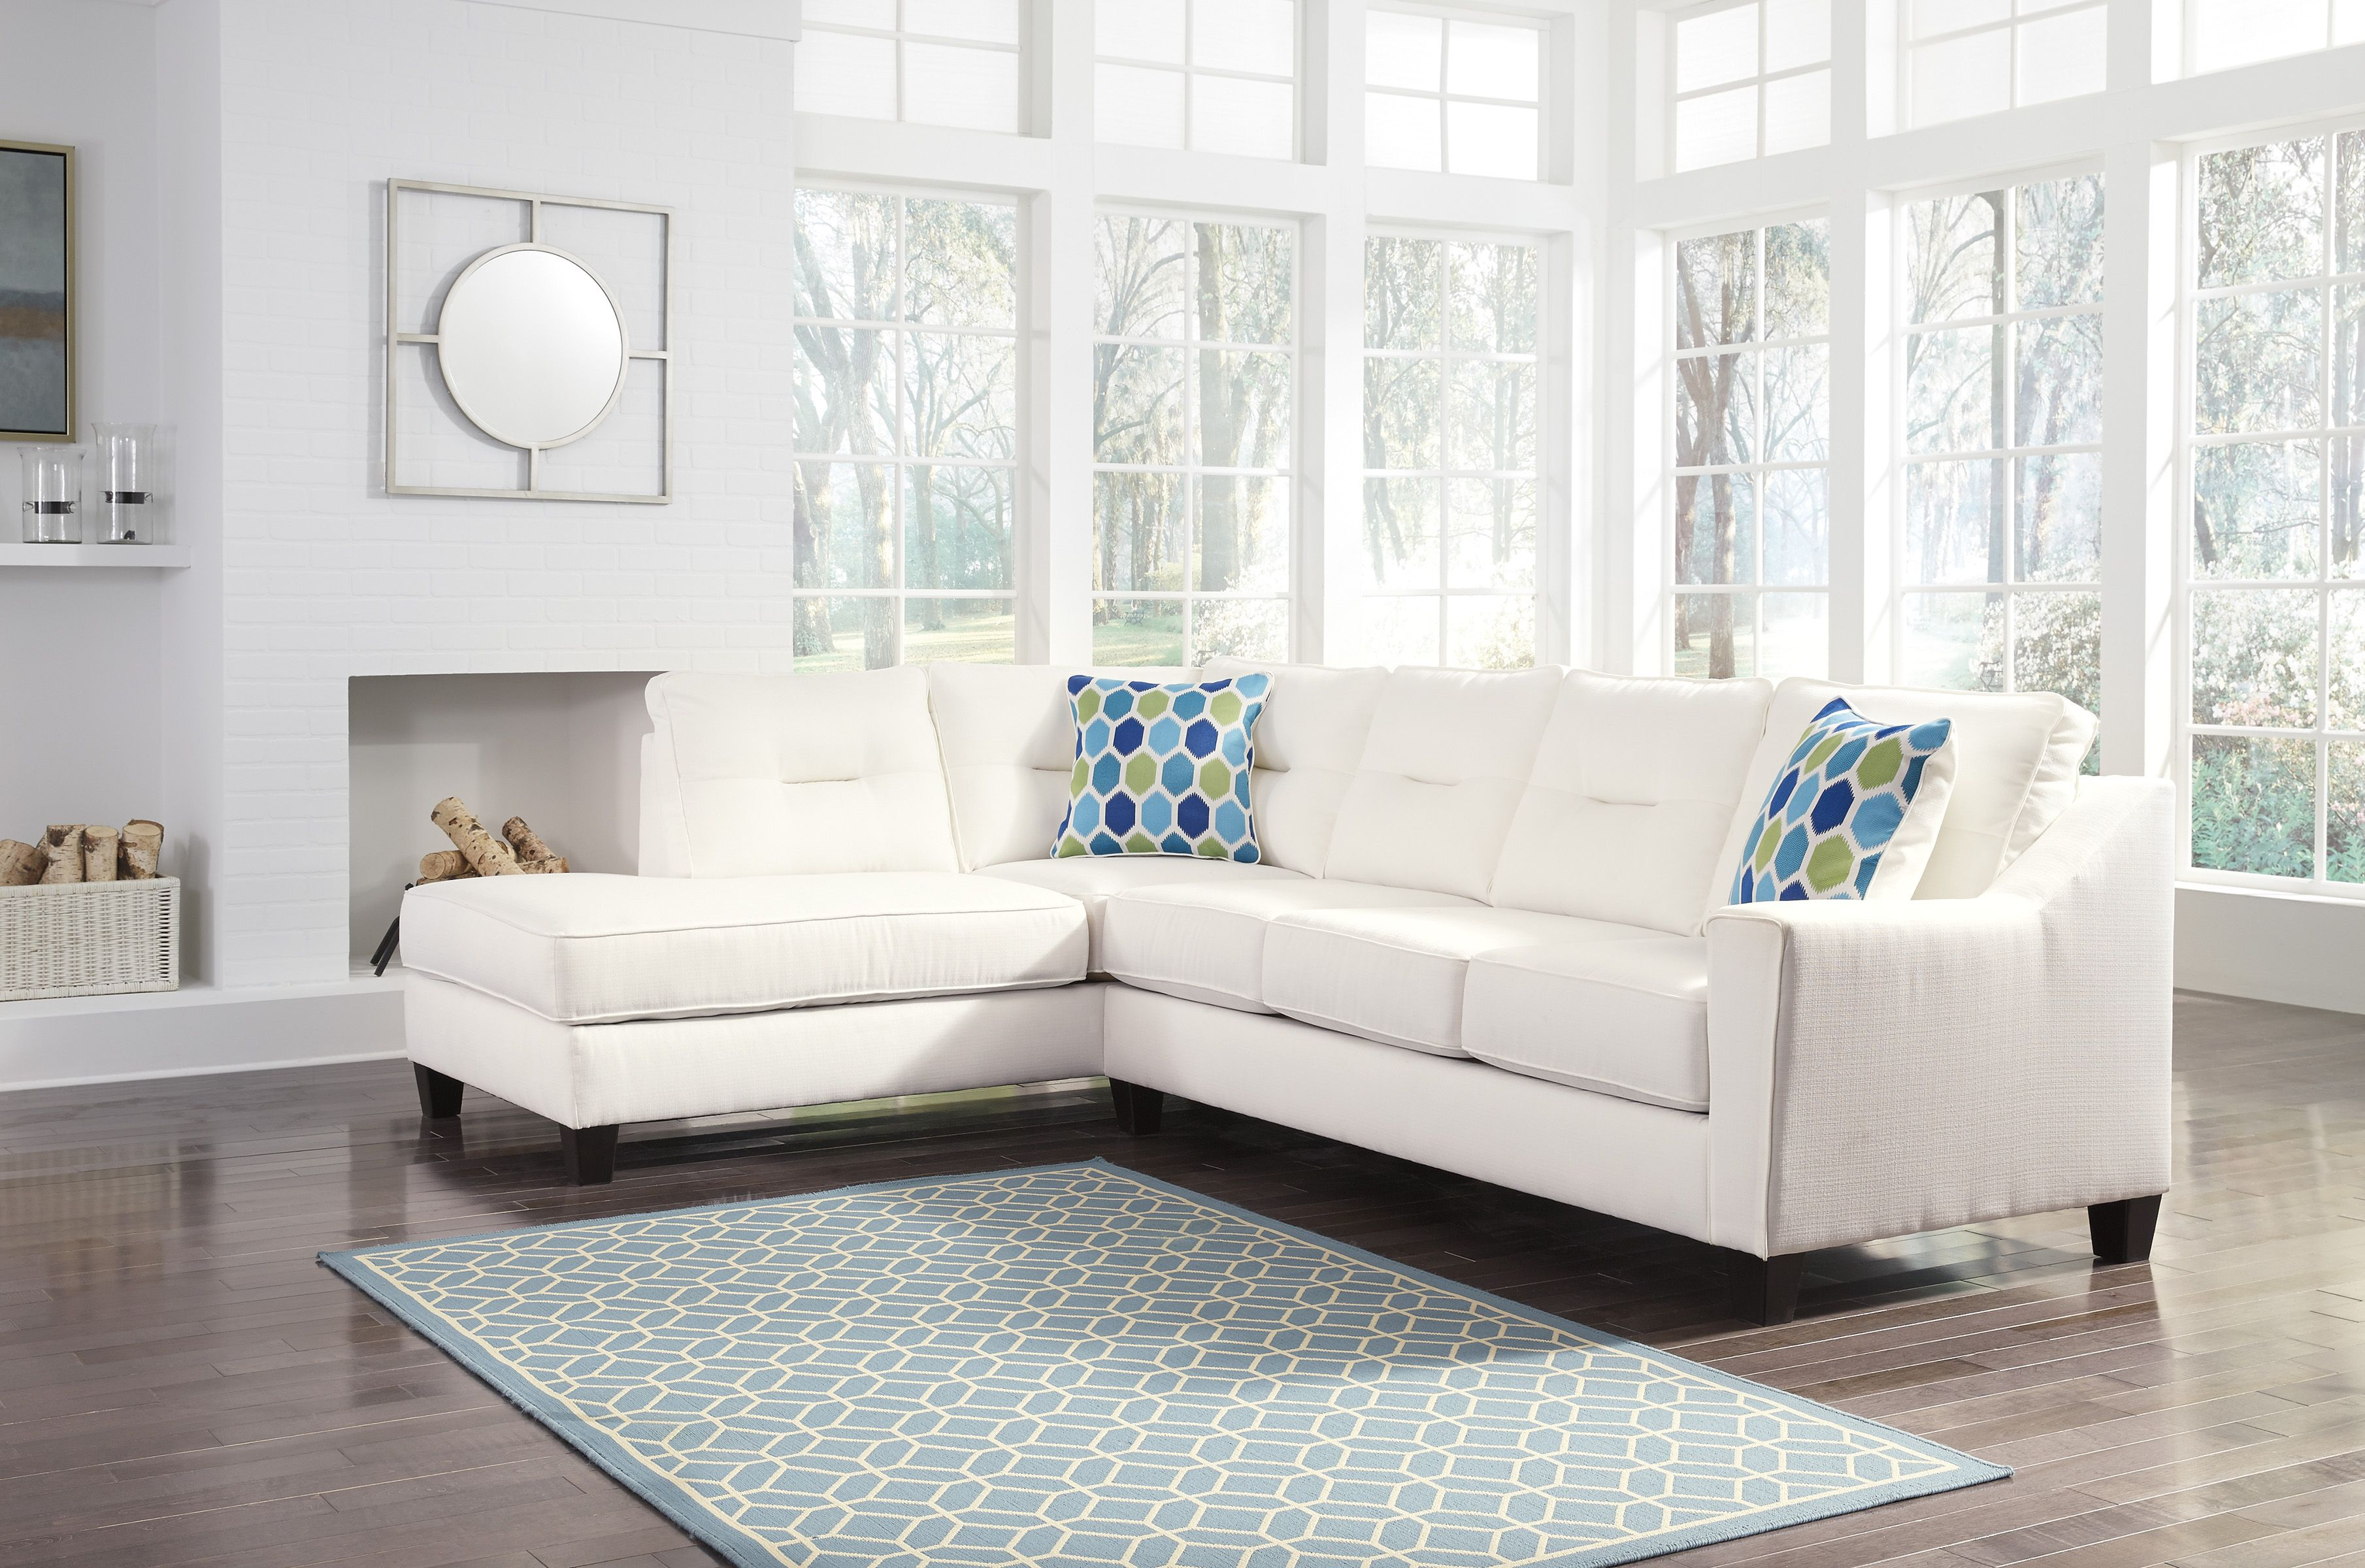 Marvelous Kirwin White Nuvella 99604 16 By Ashley Sectional Sofa Home Interior And Landscaping Palasignezvosmurscom